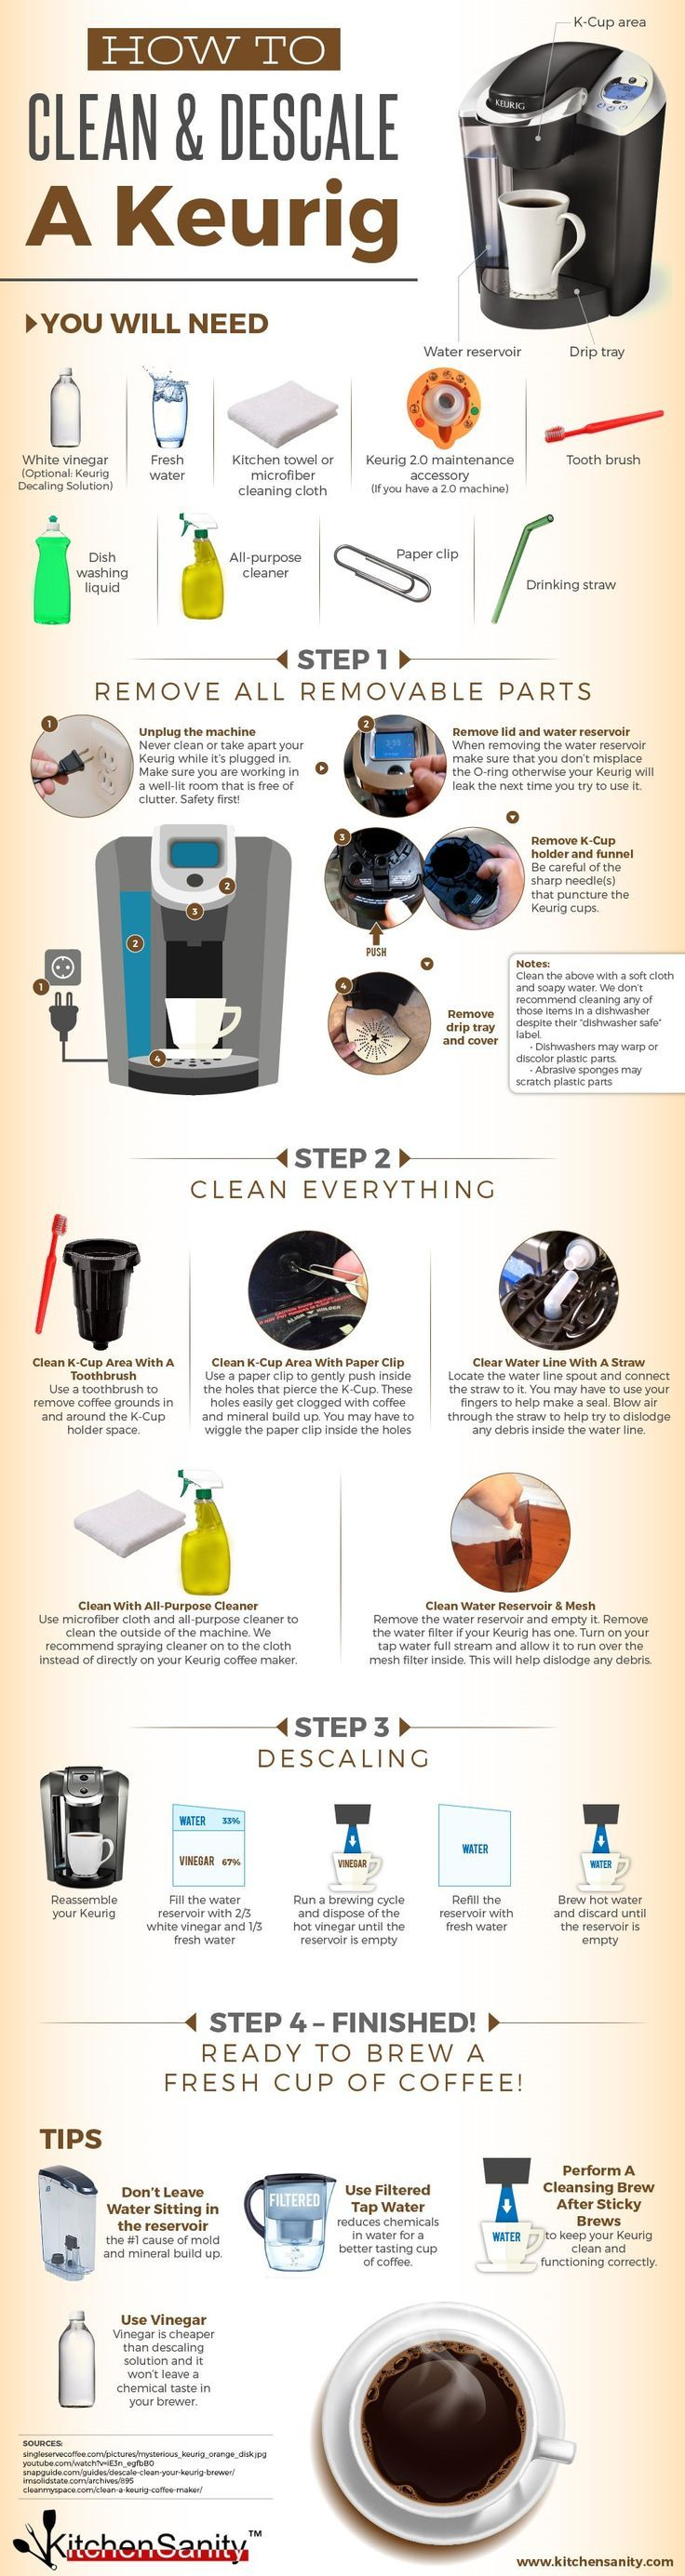 How To Clean Descale A Keurig Coffee Maker Kitchensanity Cleaning Hacks Keurig Cleaning Natural Cleaning Products